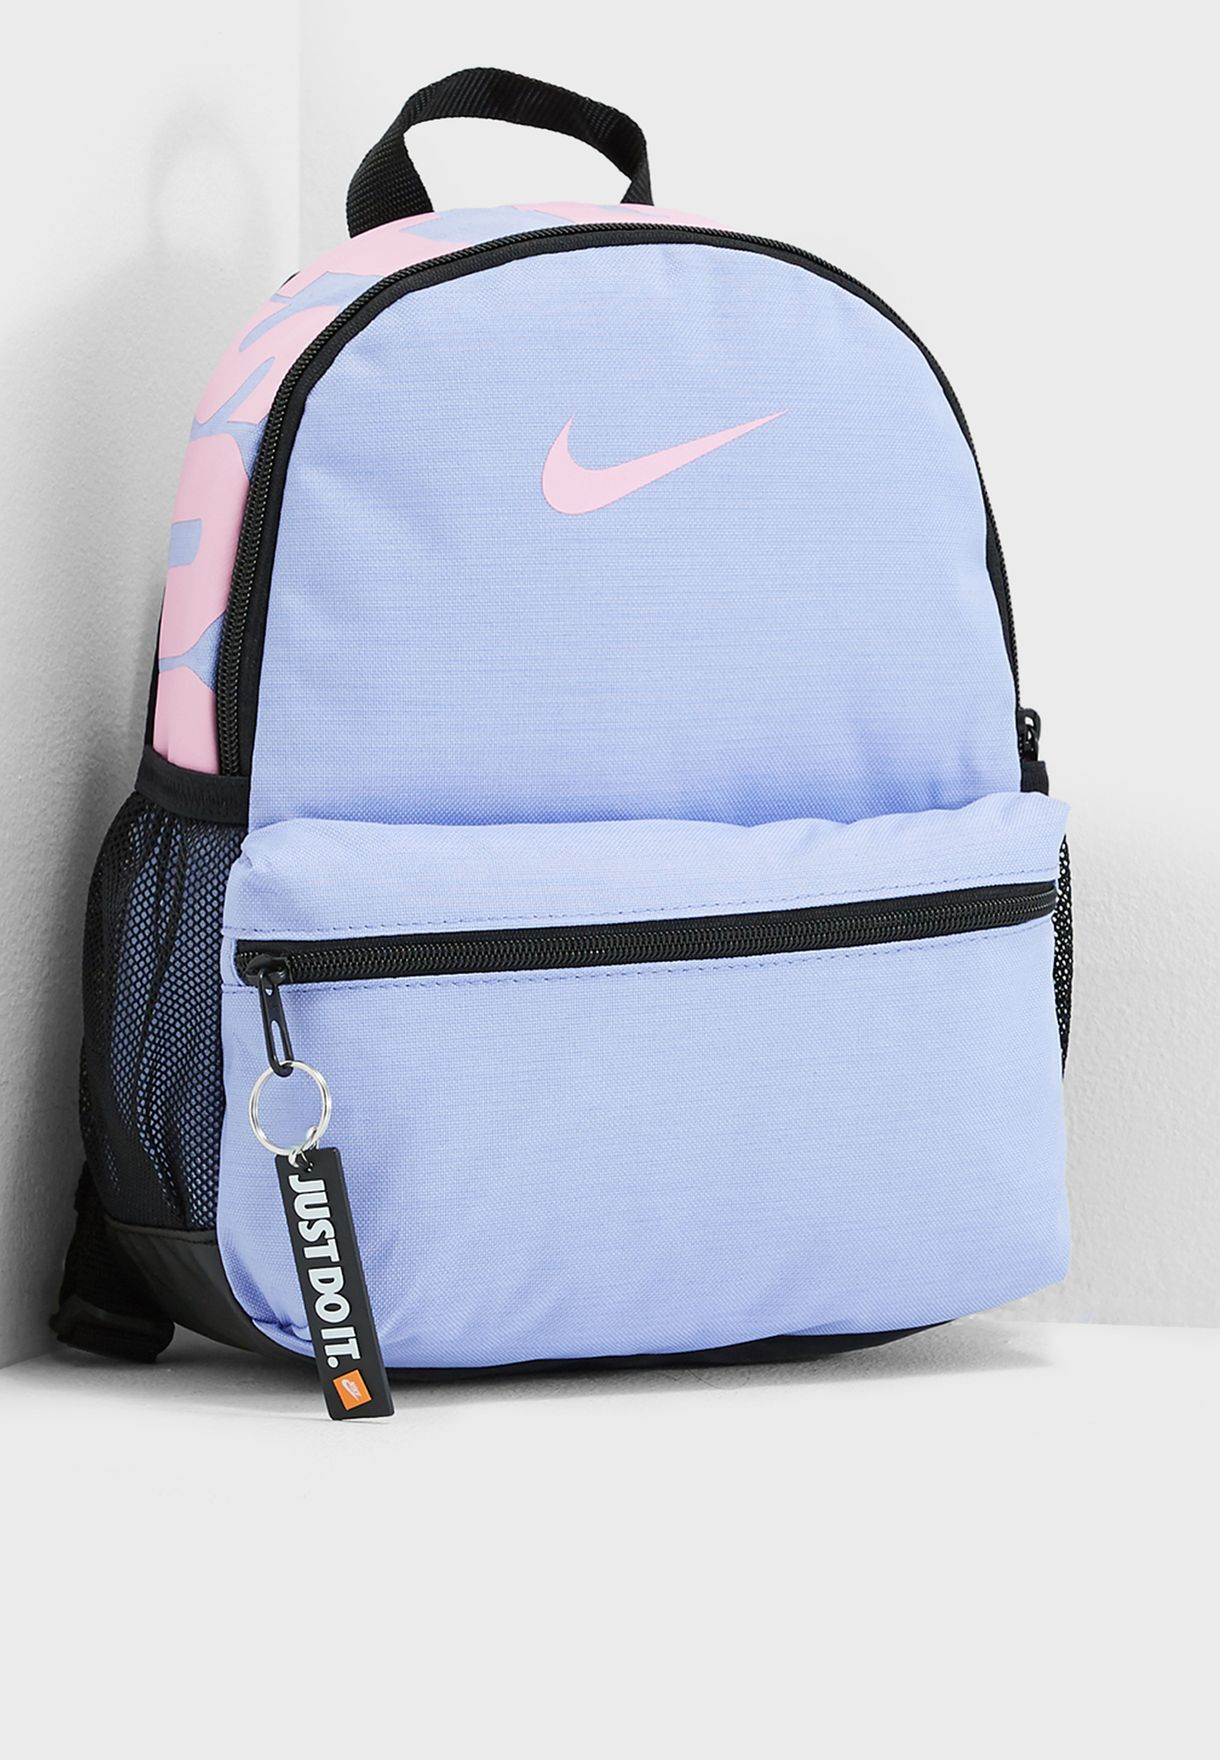 d48037a45b Shop Nike purple Brasilia Just Do It Mini Backpack BA5559-477 for ...